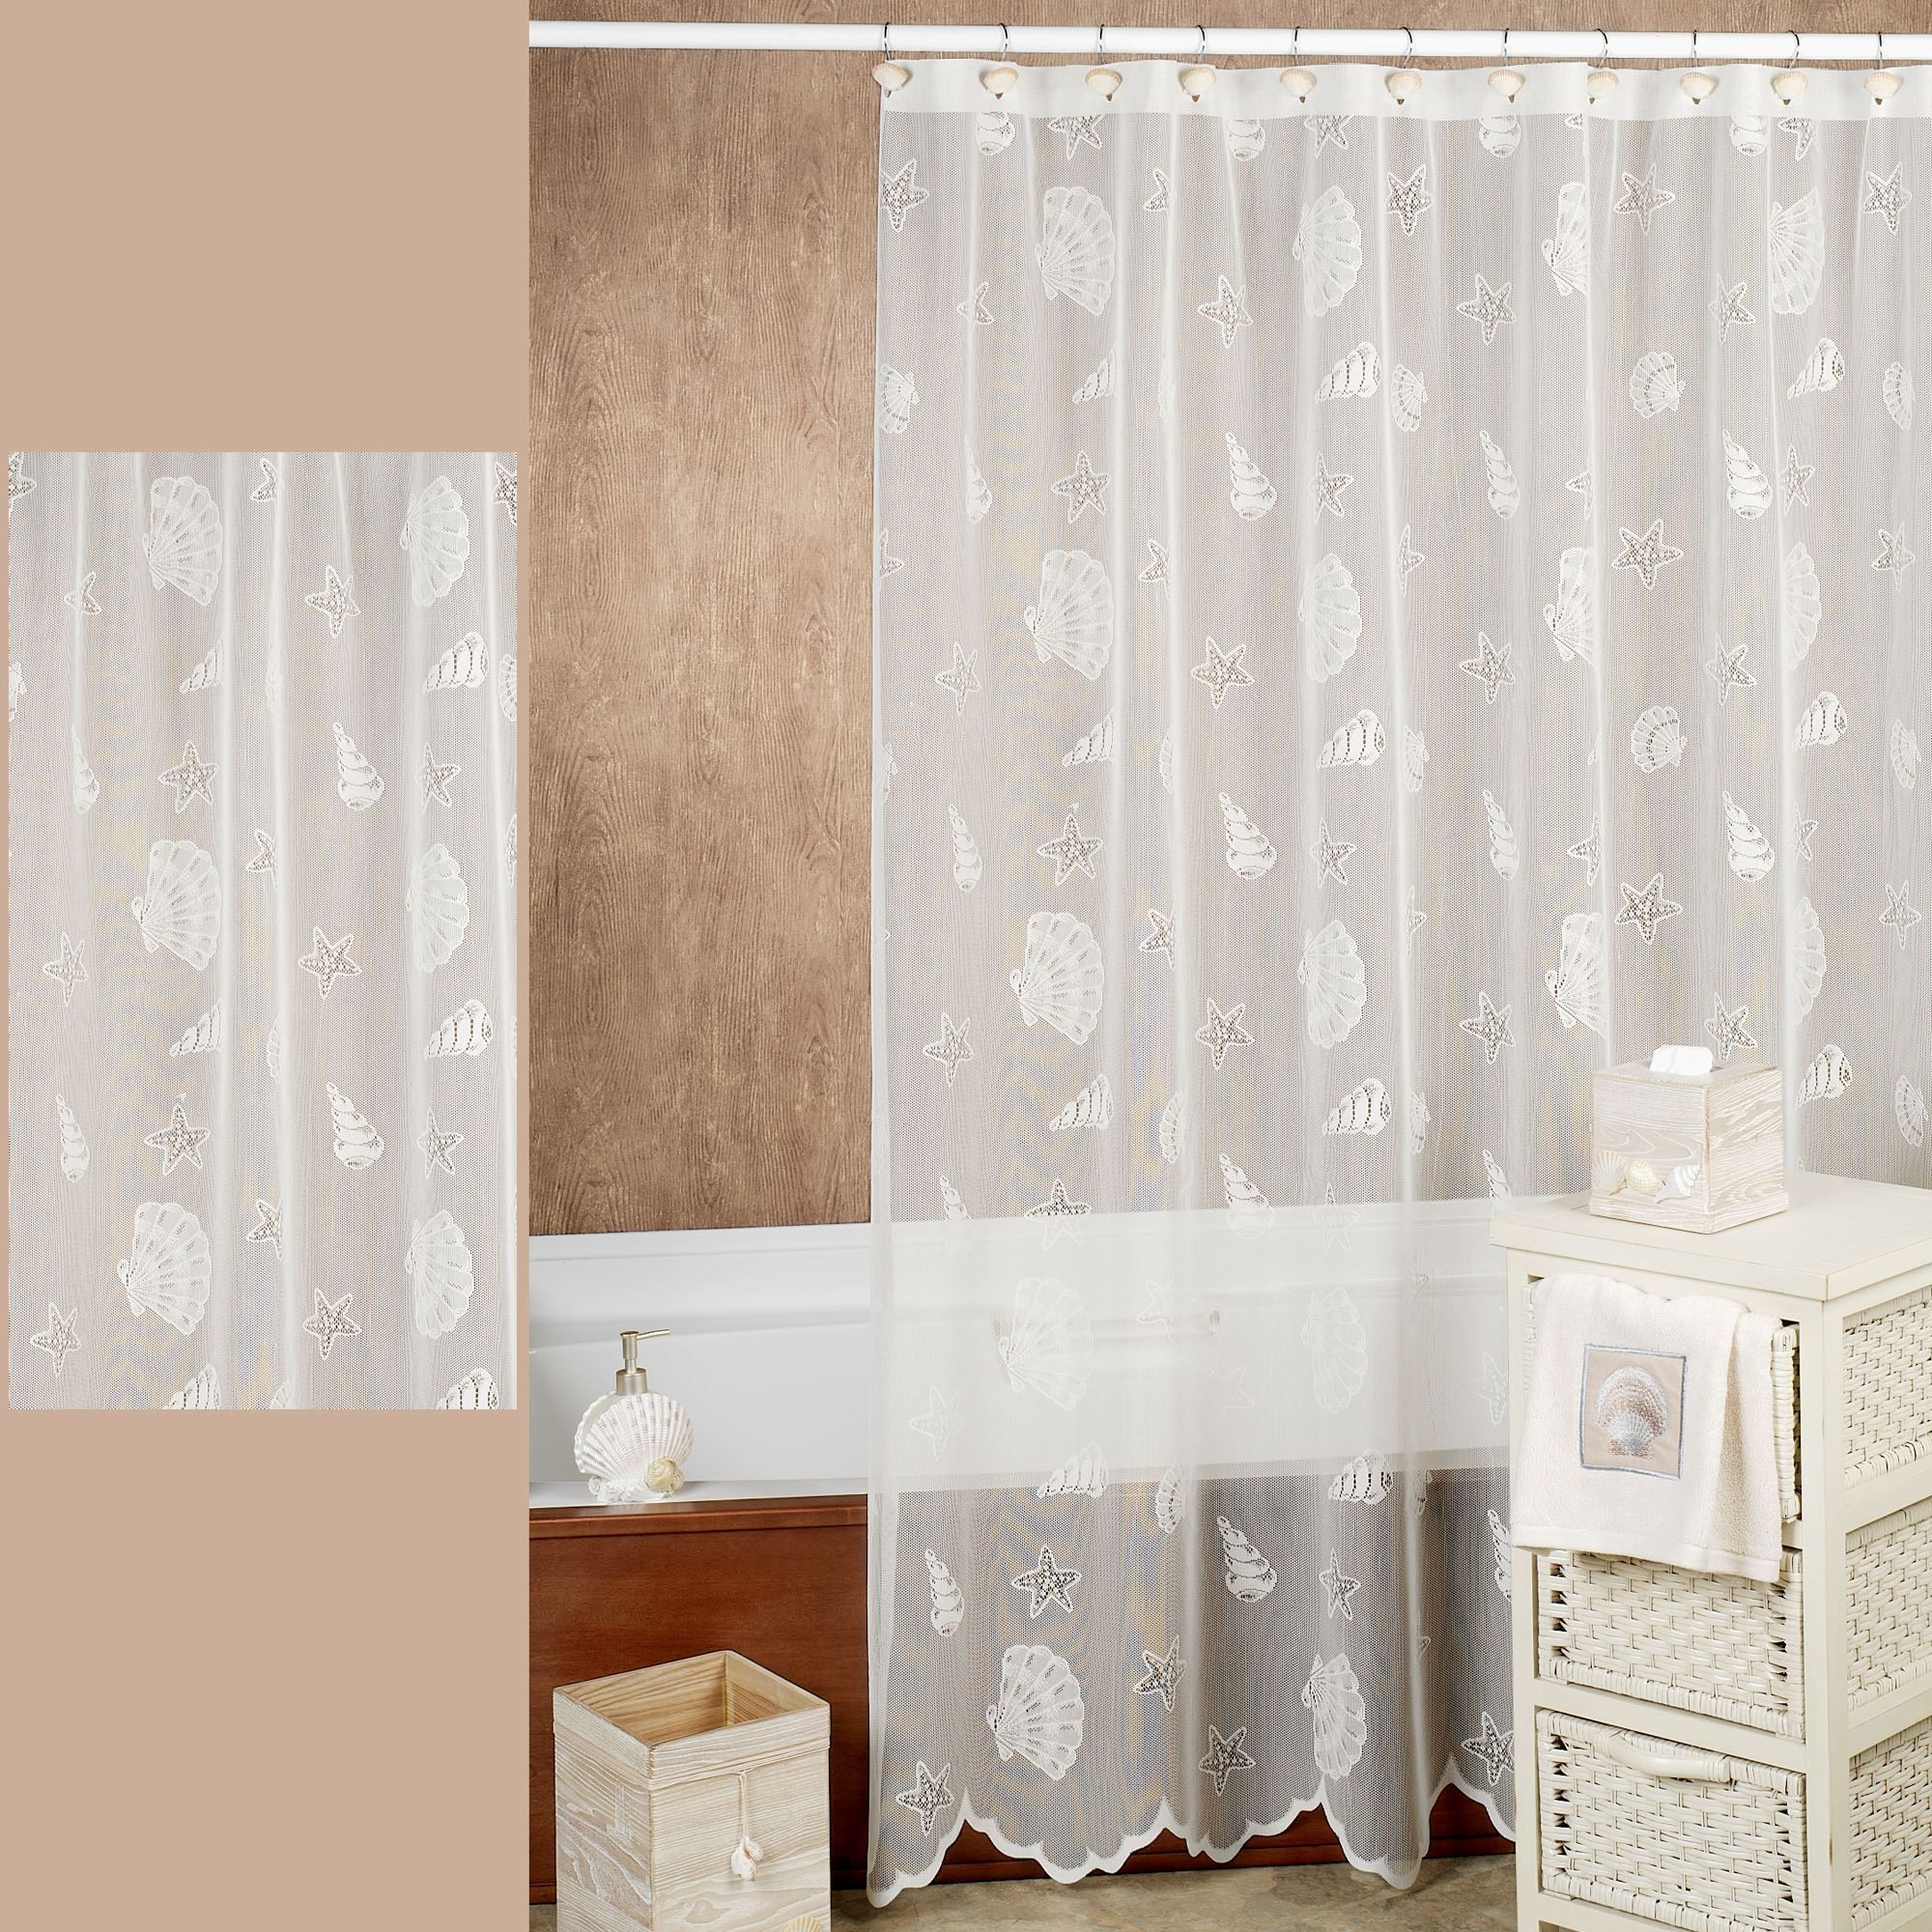 Fancy Lace Shower Curtains | http://legalize-crew.com | Pinterest ...